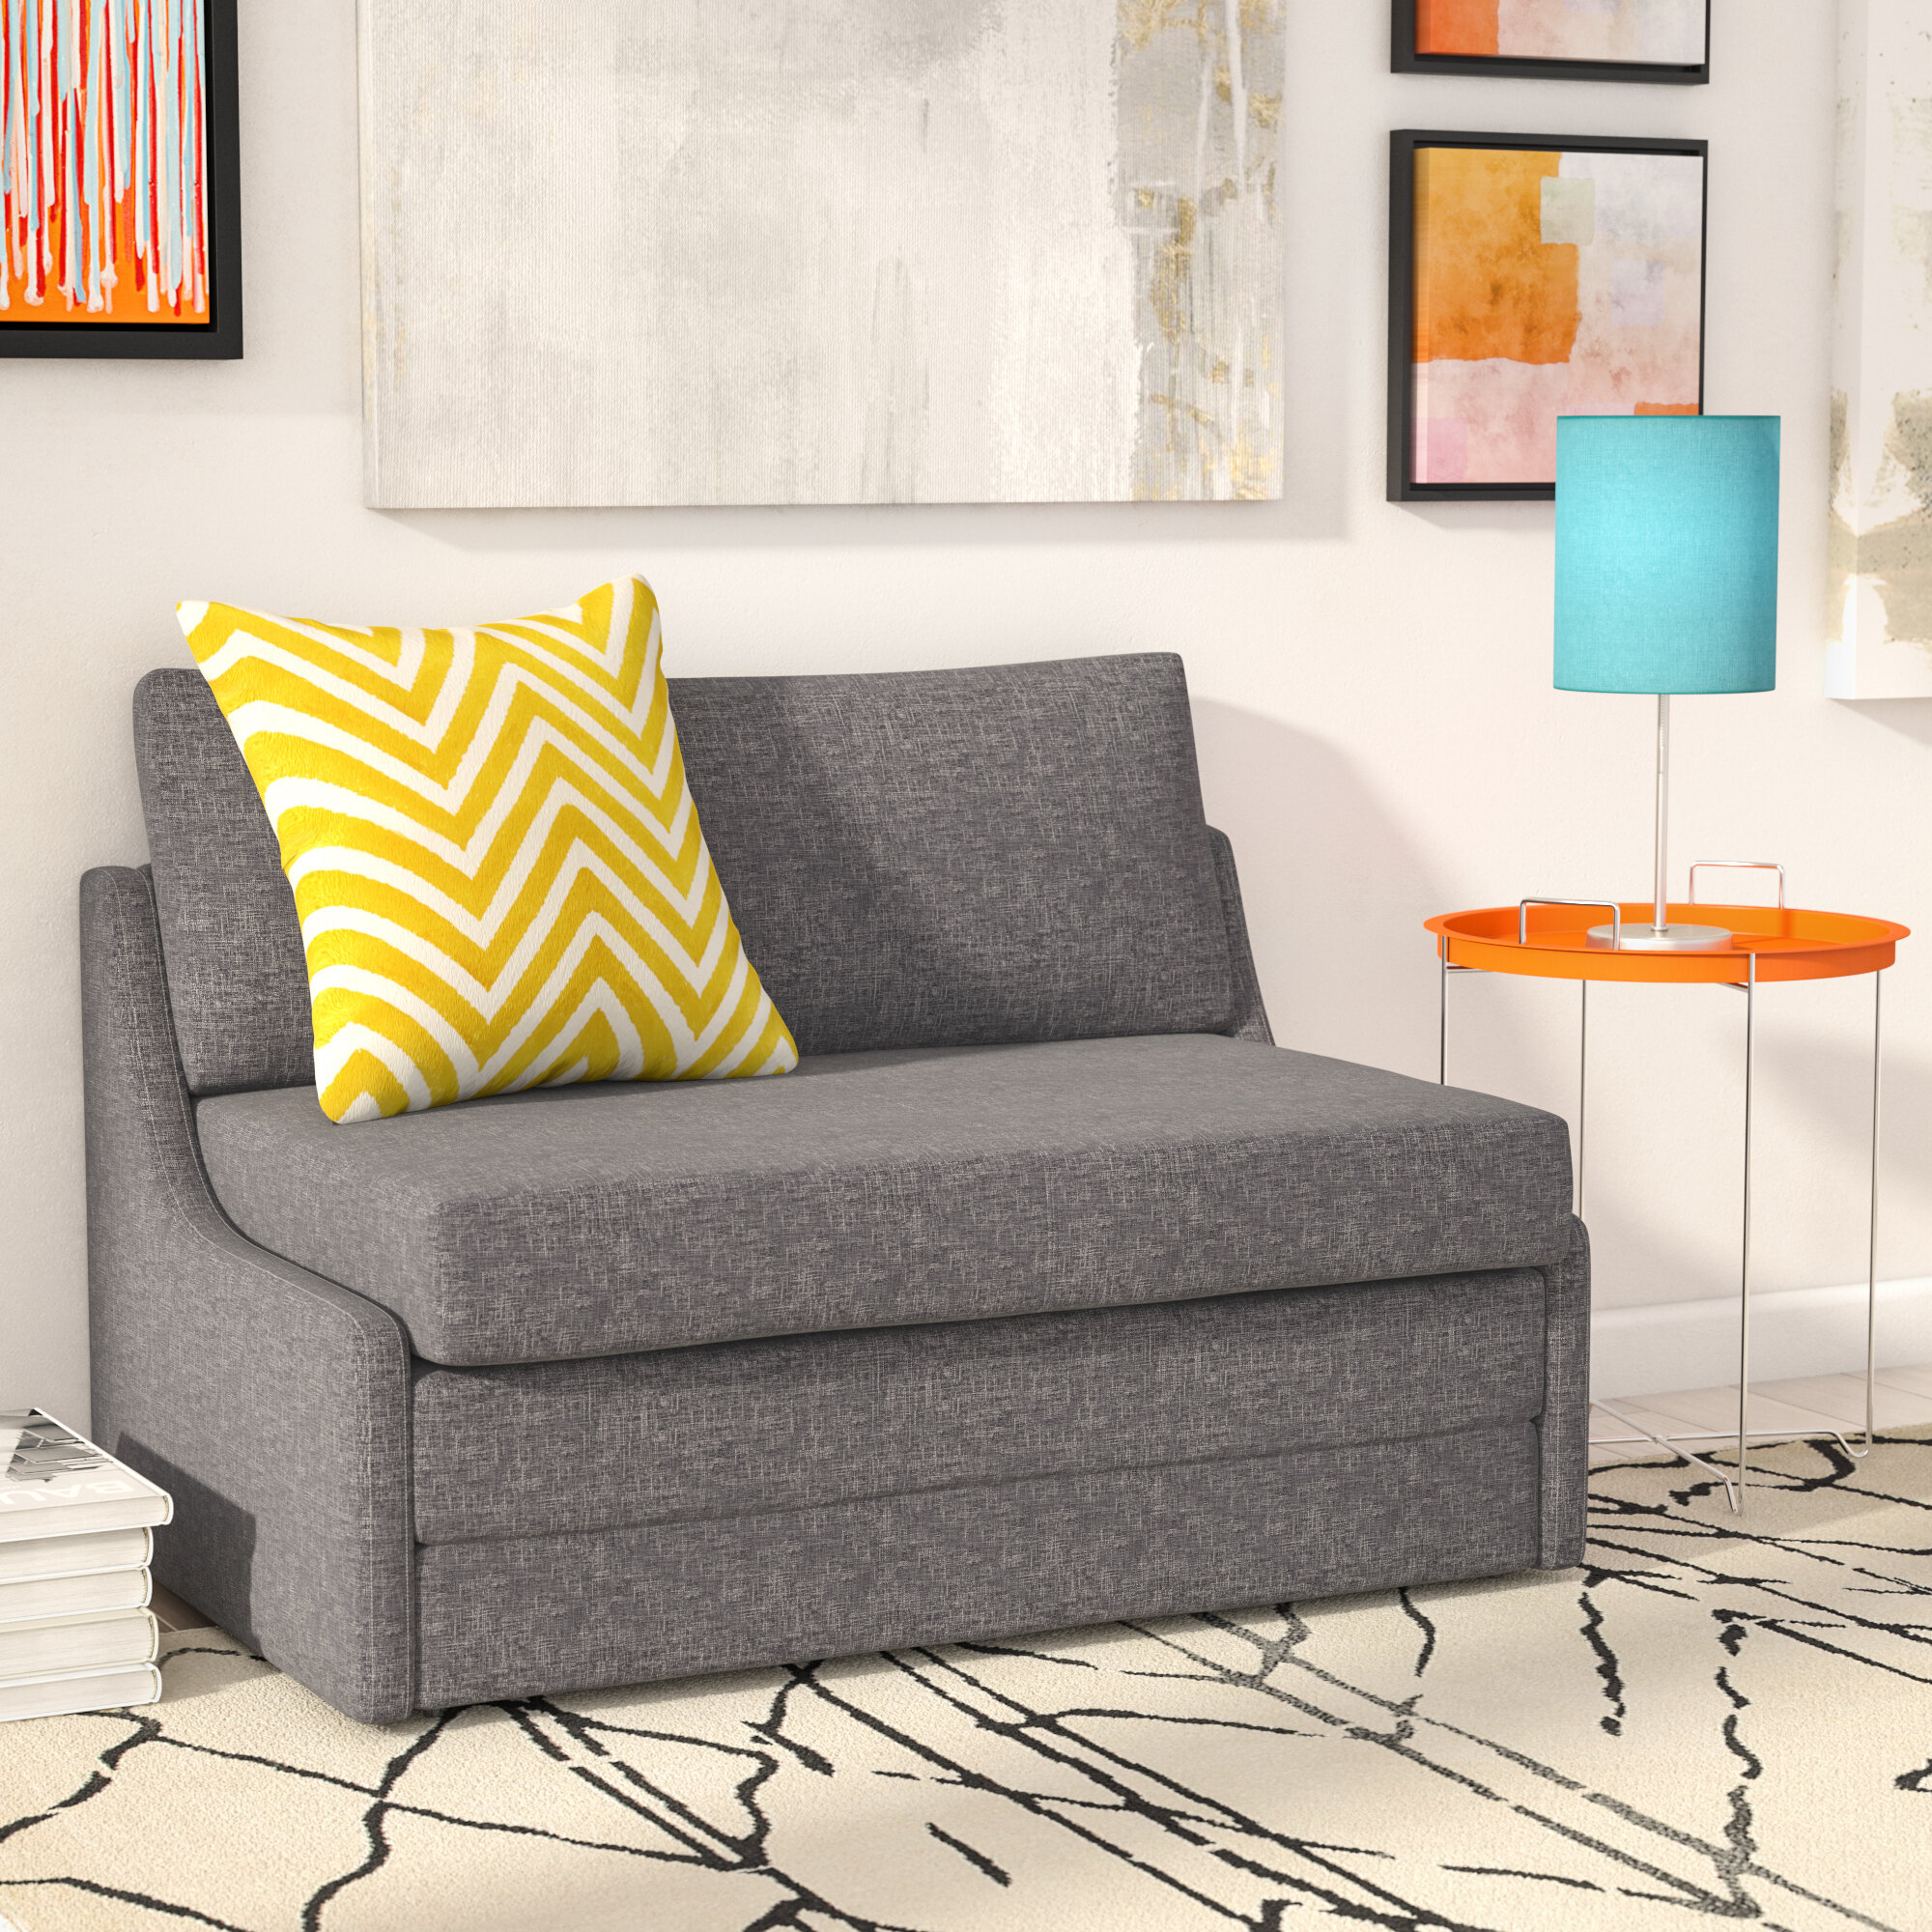 Loveseats For Small Spaces You Ll Love In 2021 Visualhunt